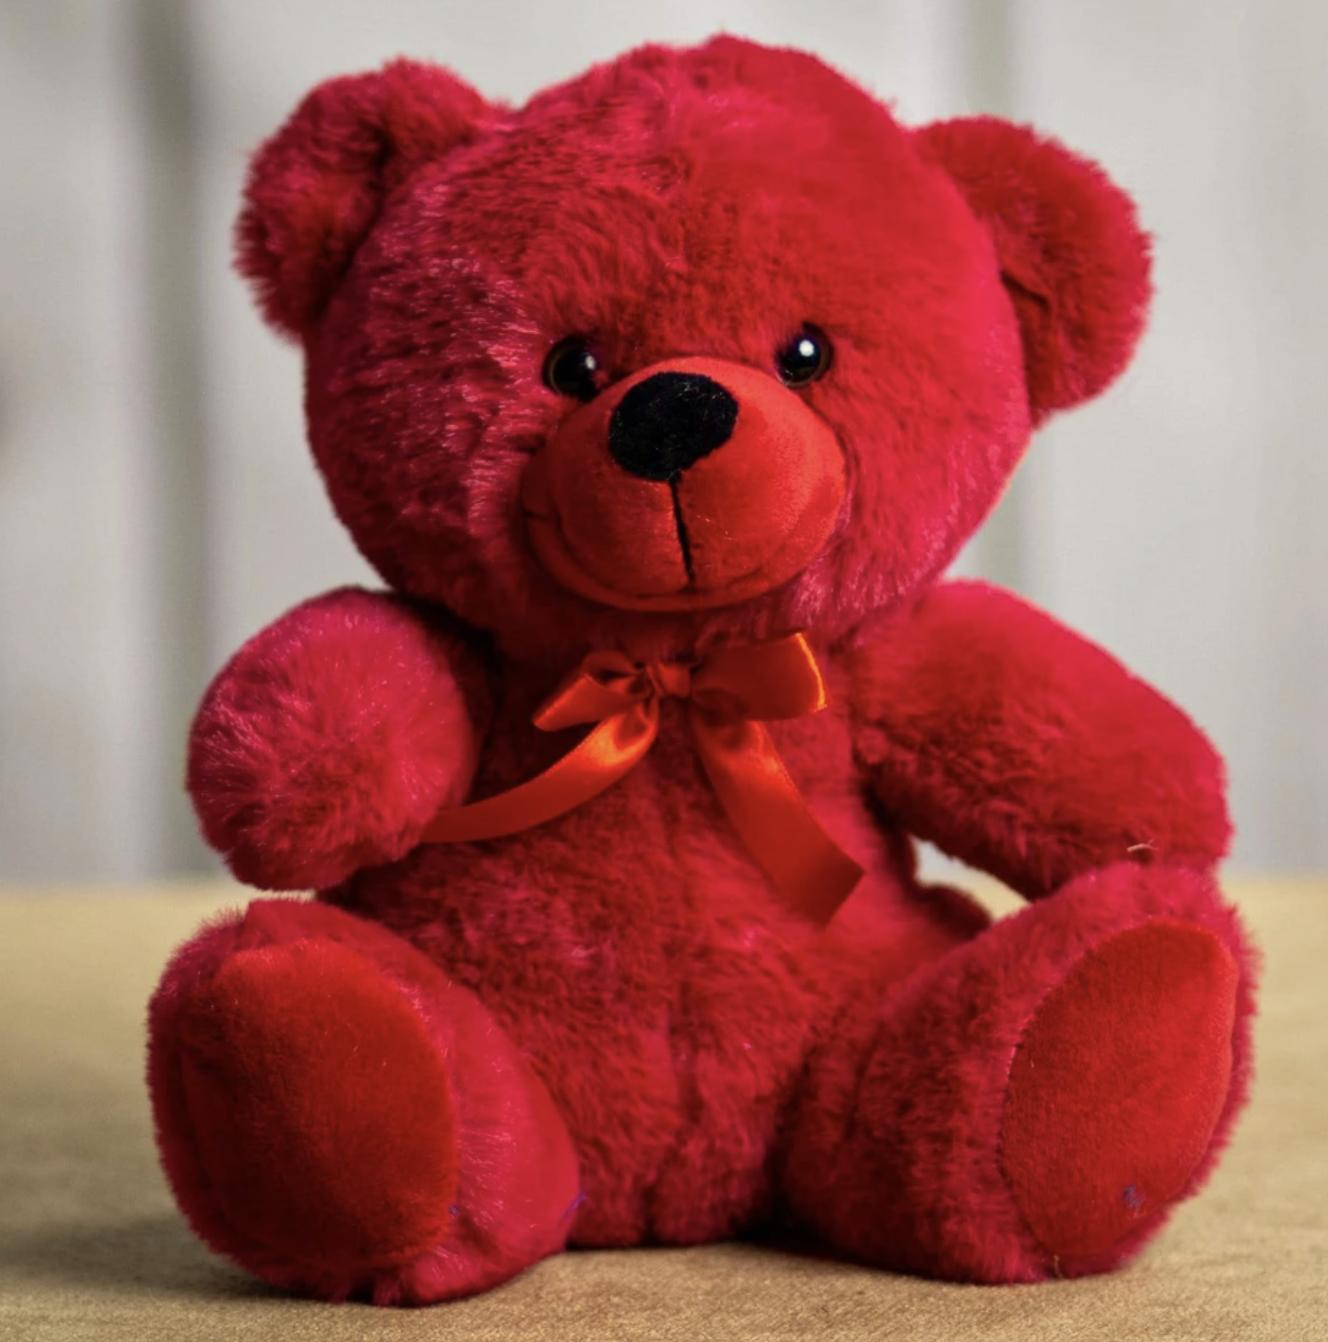 9 red plush teddy bear stuffed animal